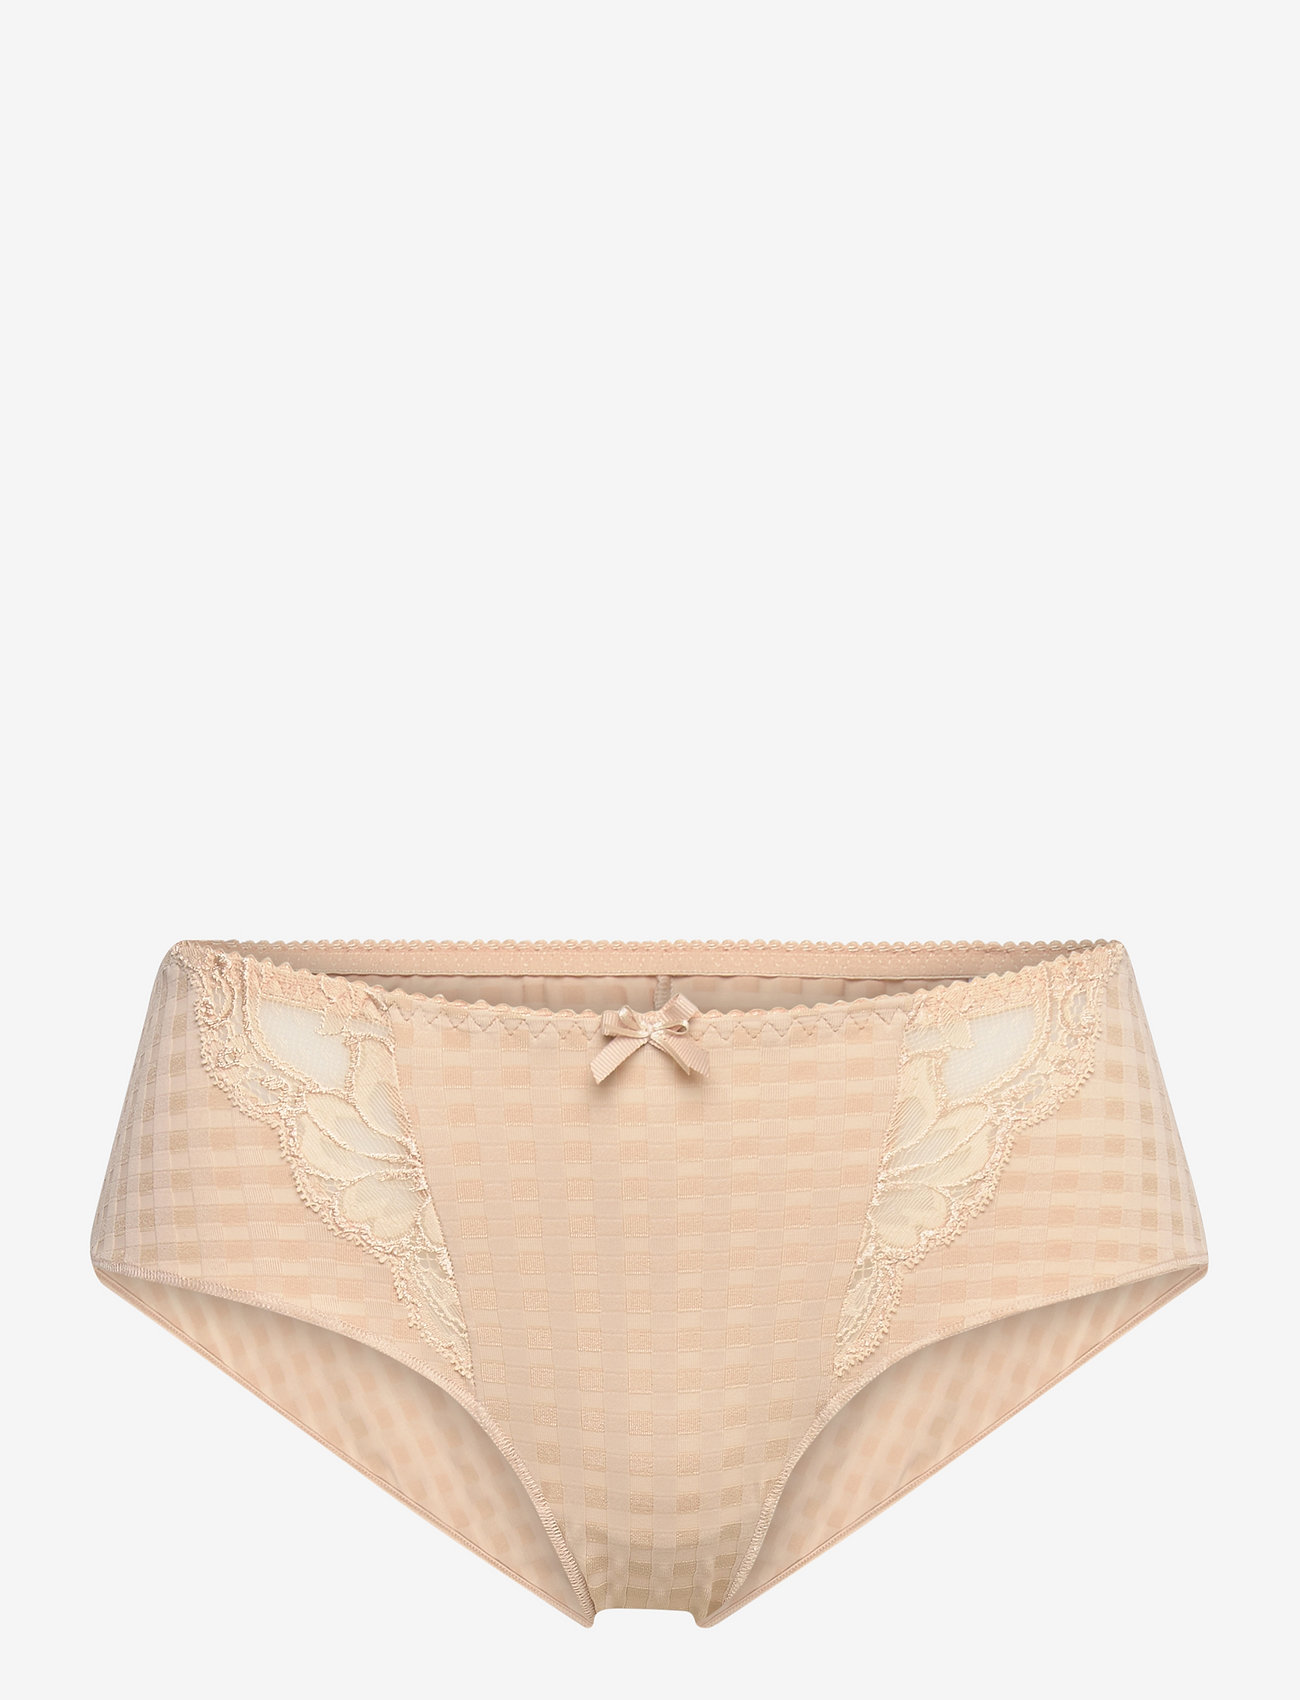 Primadonna - MADISON HOTPANTS - boxers - caffe latte